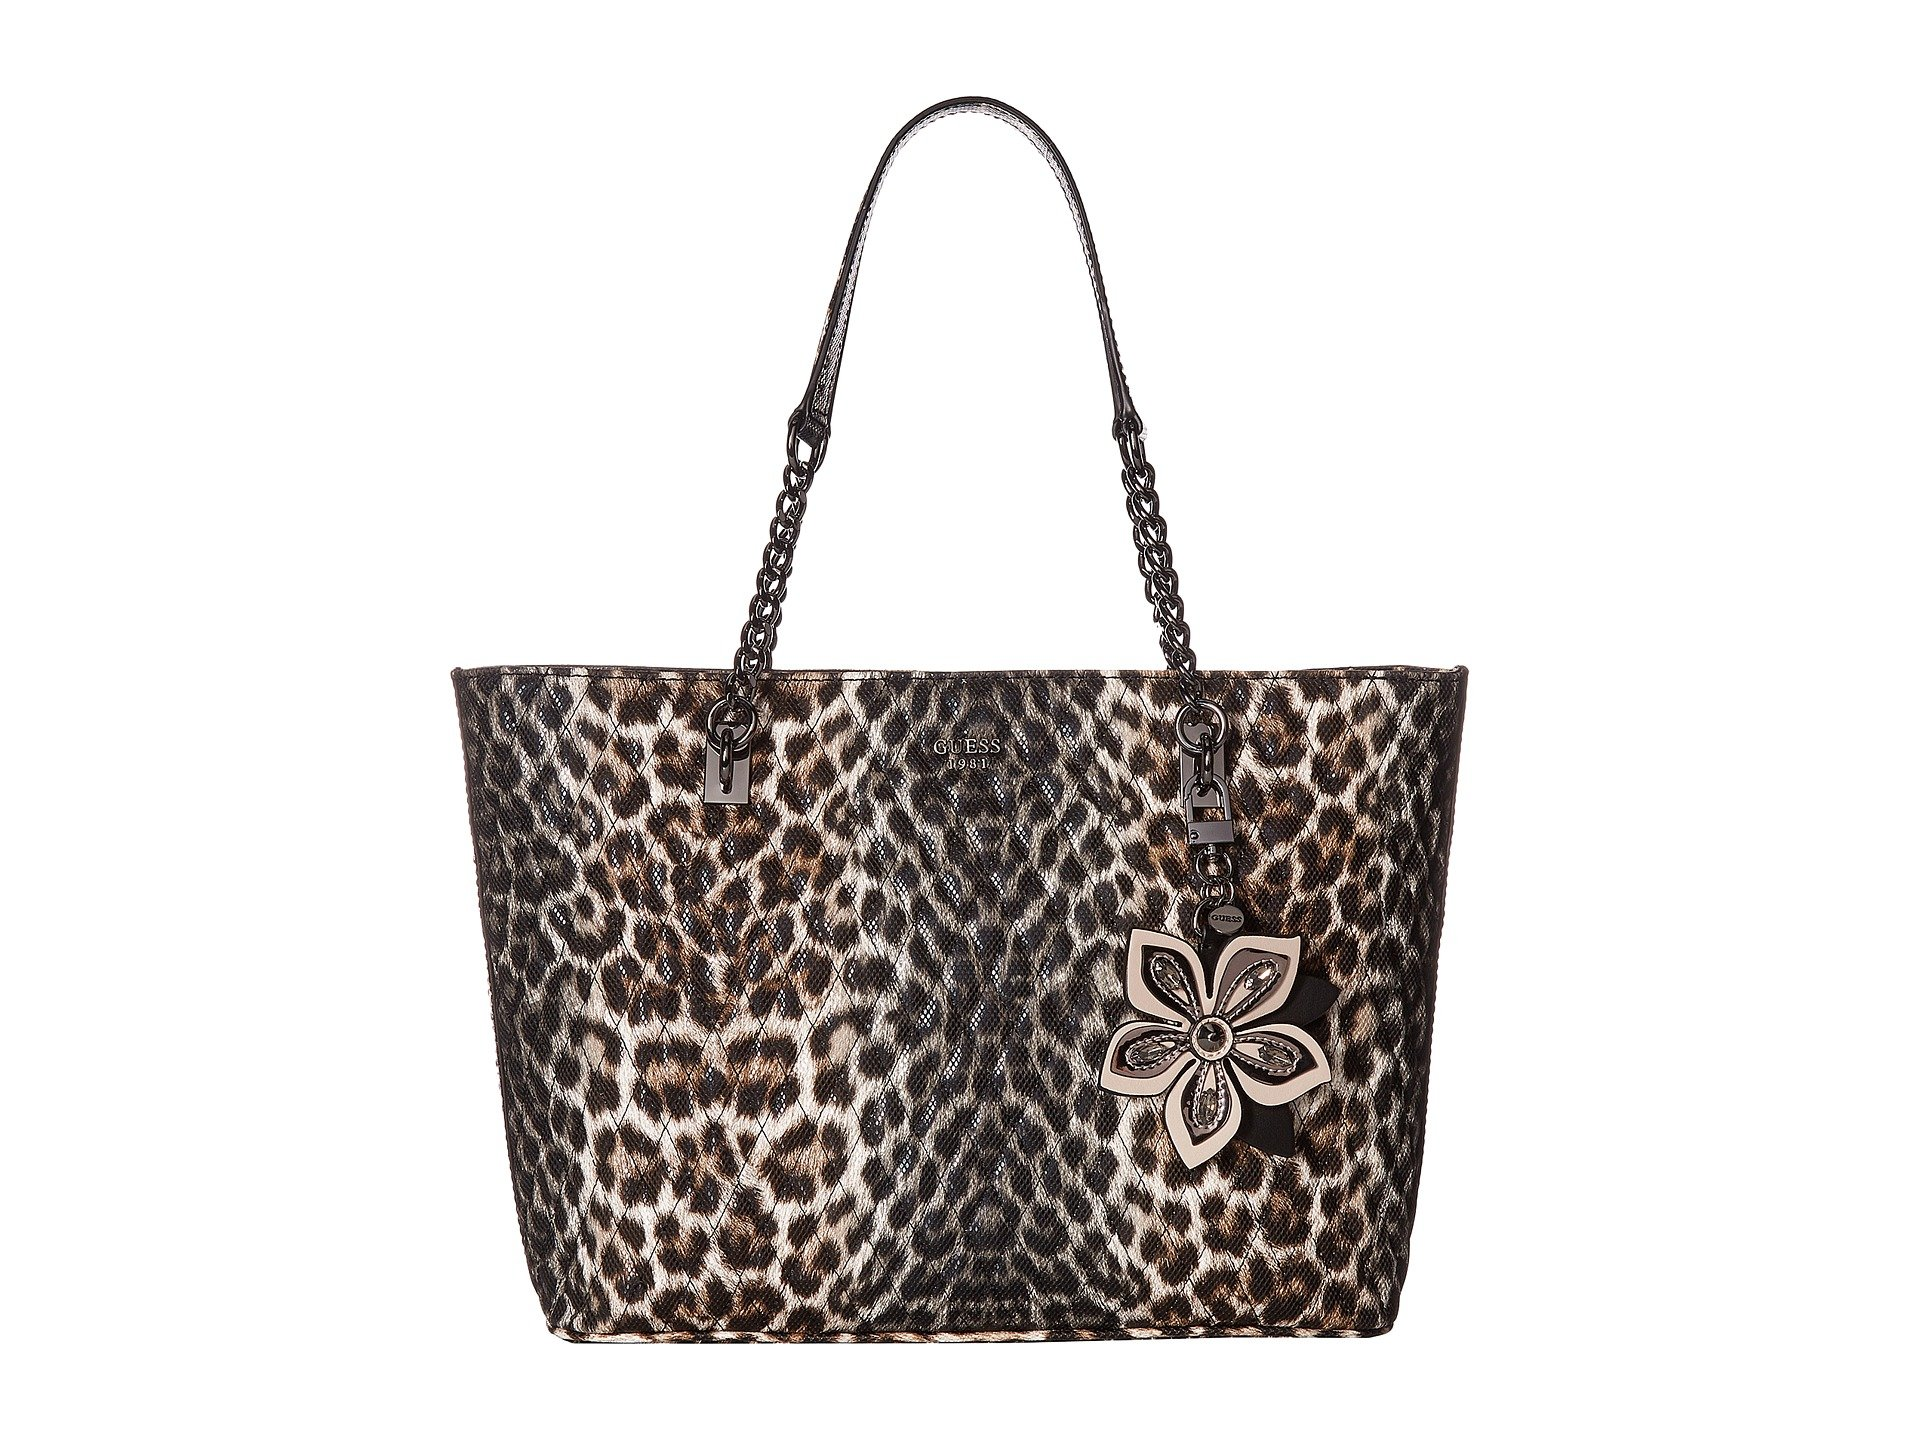 60363f5187a3 Guess Sibyl Tote In Leopard